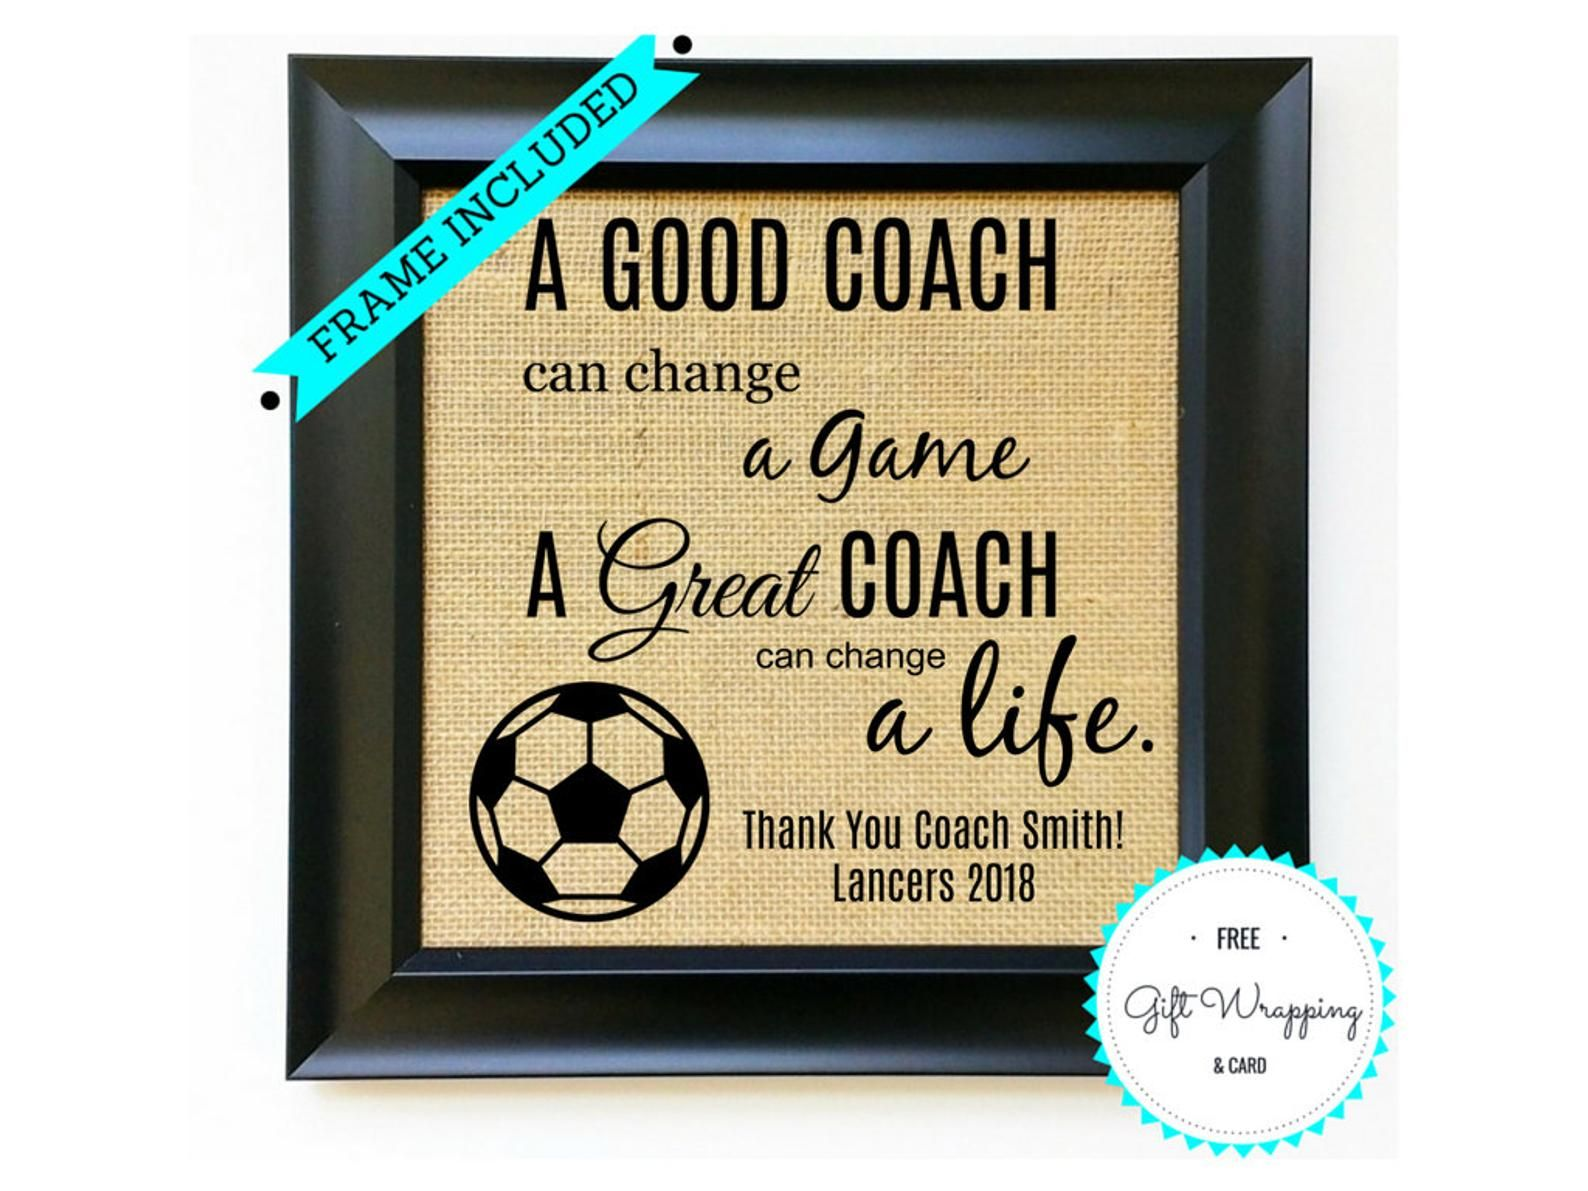 Soccer Coach Gift Ideas From Team Soccer Coach Gifts Etsy Soccer Coach Gifts Coach Gifts Soccer Coach Quotes